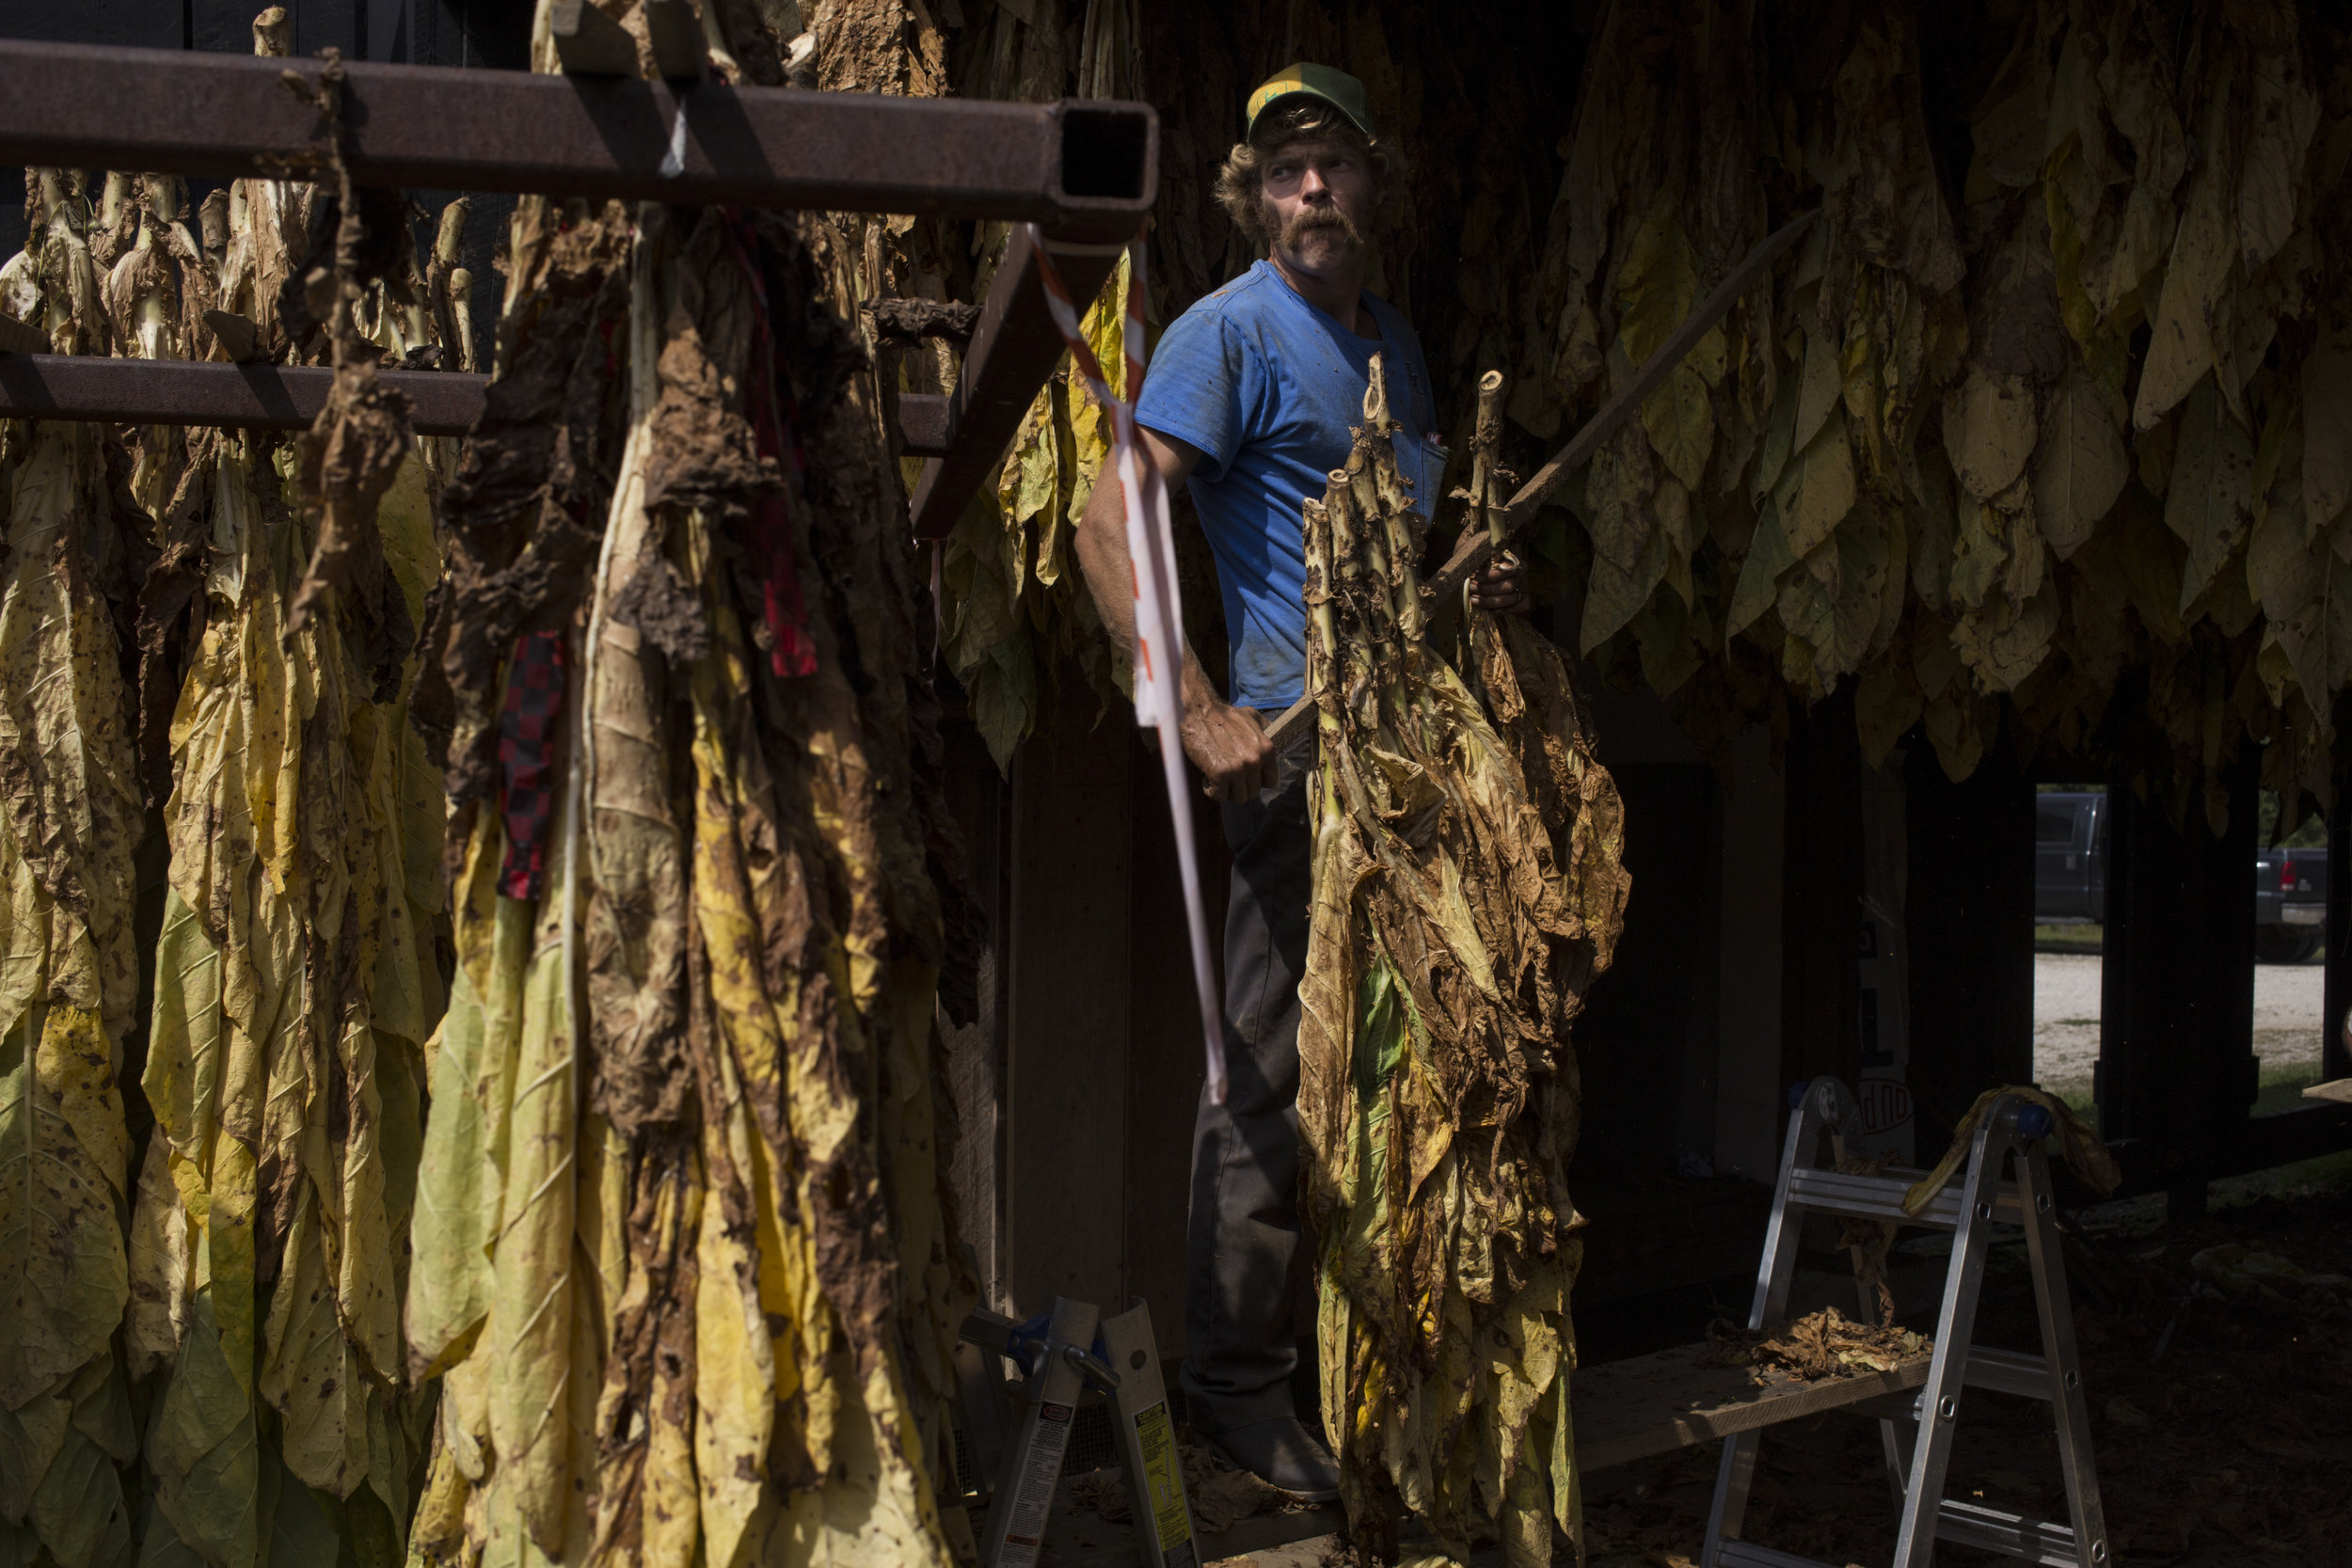 Thomas Morgan, 32, steadily lifts swaths of tobacco to be hung to dry at the Robinson Center for Appalachian Resource Sustainability in Quicksand, Ky., on Monday, September 27, 2017.